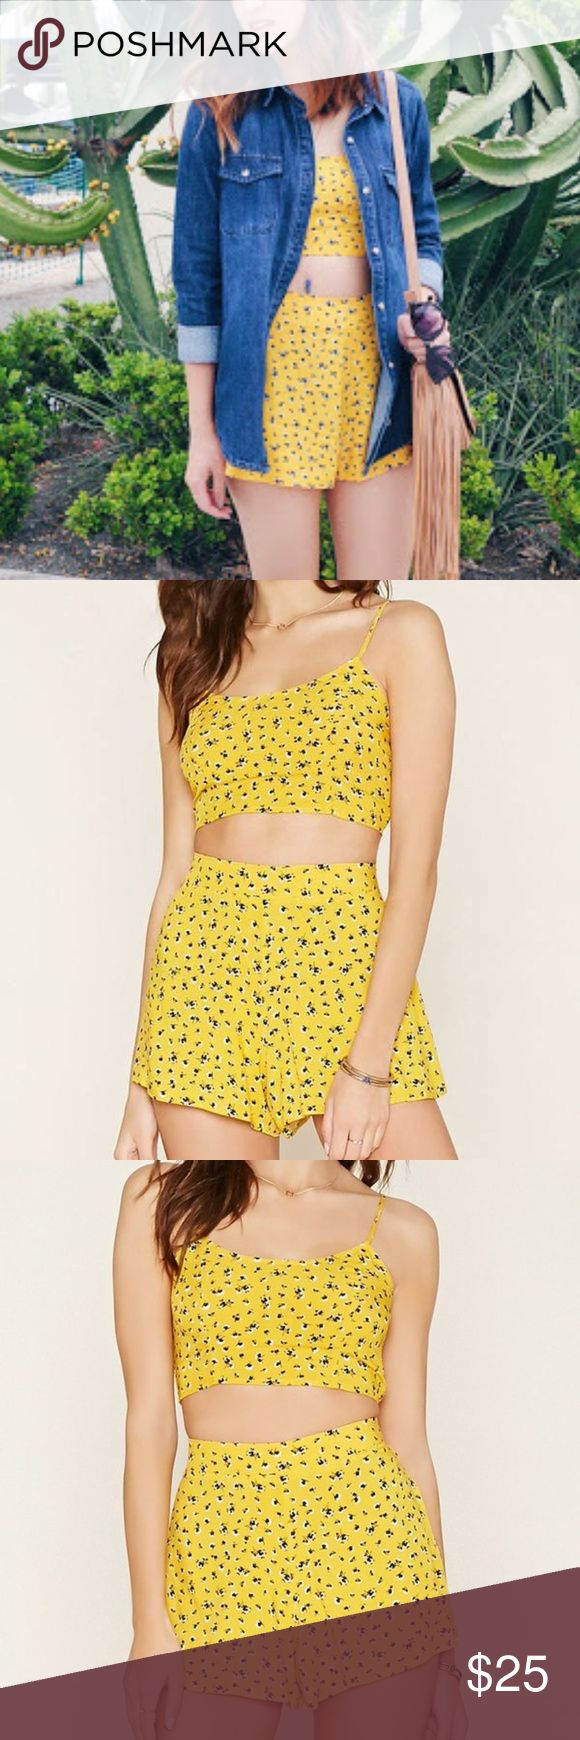 Forever 21 | Yellow Two Piece Top and Shorts Set Two-piece floral print cropped top and shorts set from Forever 21. This sweet little top and shorts co-ord set is perfect for spring/summer. This would make a great music festival outfit. Only worn once for photos. Straps are adjustable. Back of the top is a stretchy rushed elastic to ensure the perfect fit. Bottoms are also fitted with elastic on the back. Forever 21 Shorts